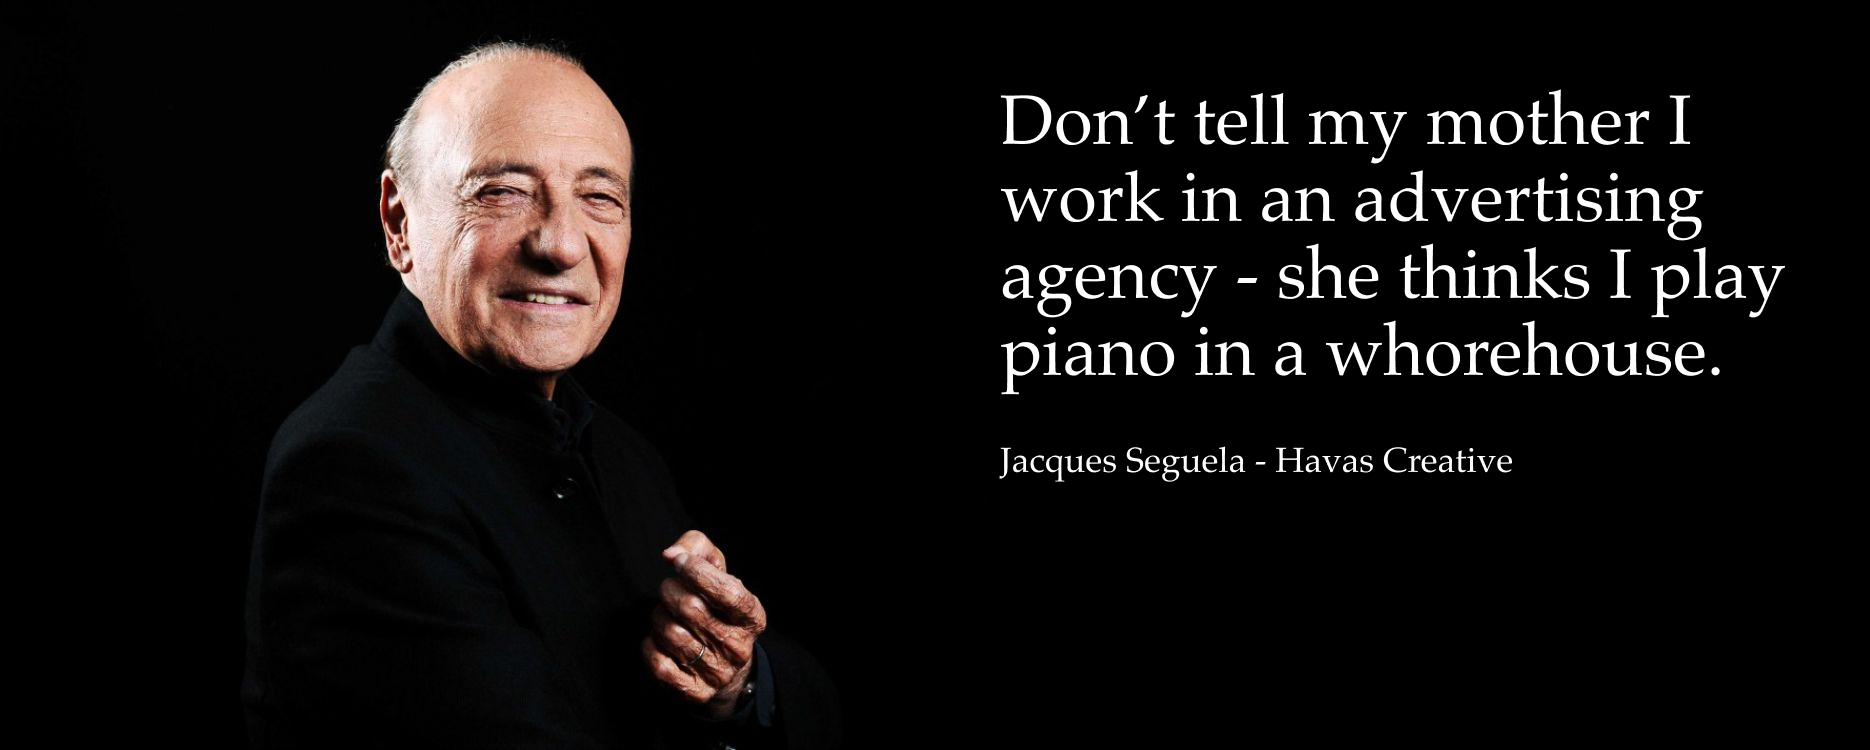 Don't tell my mother I work in an advertising agency — she thinks I play piano in a whorehouse. — Jacques Seguela